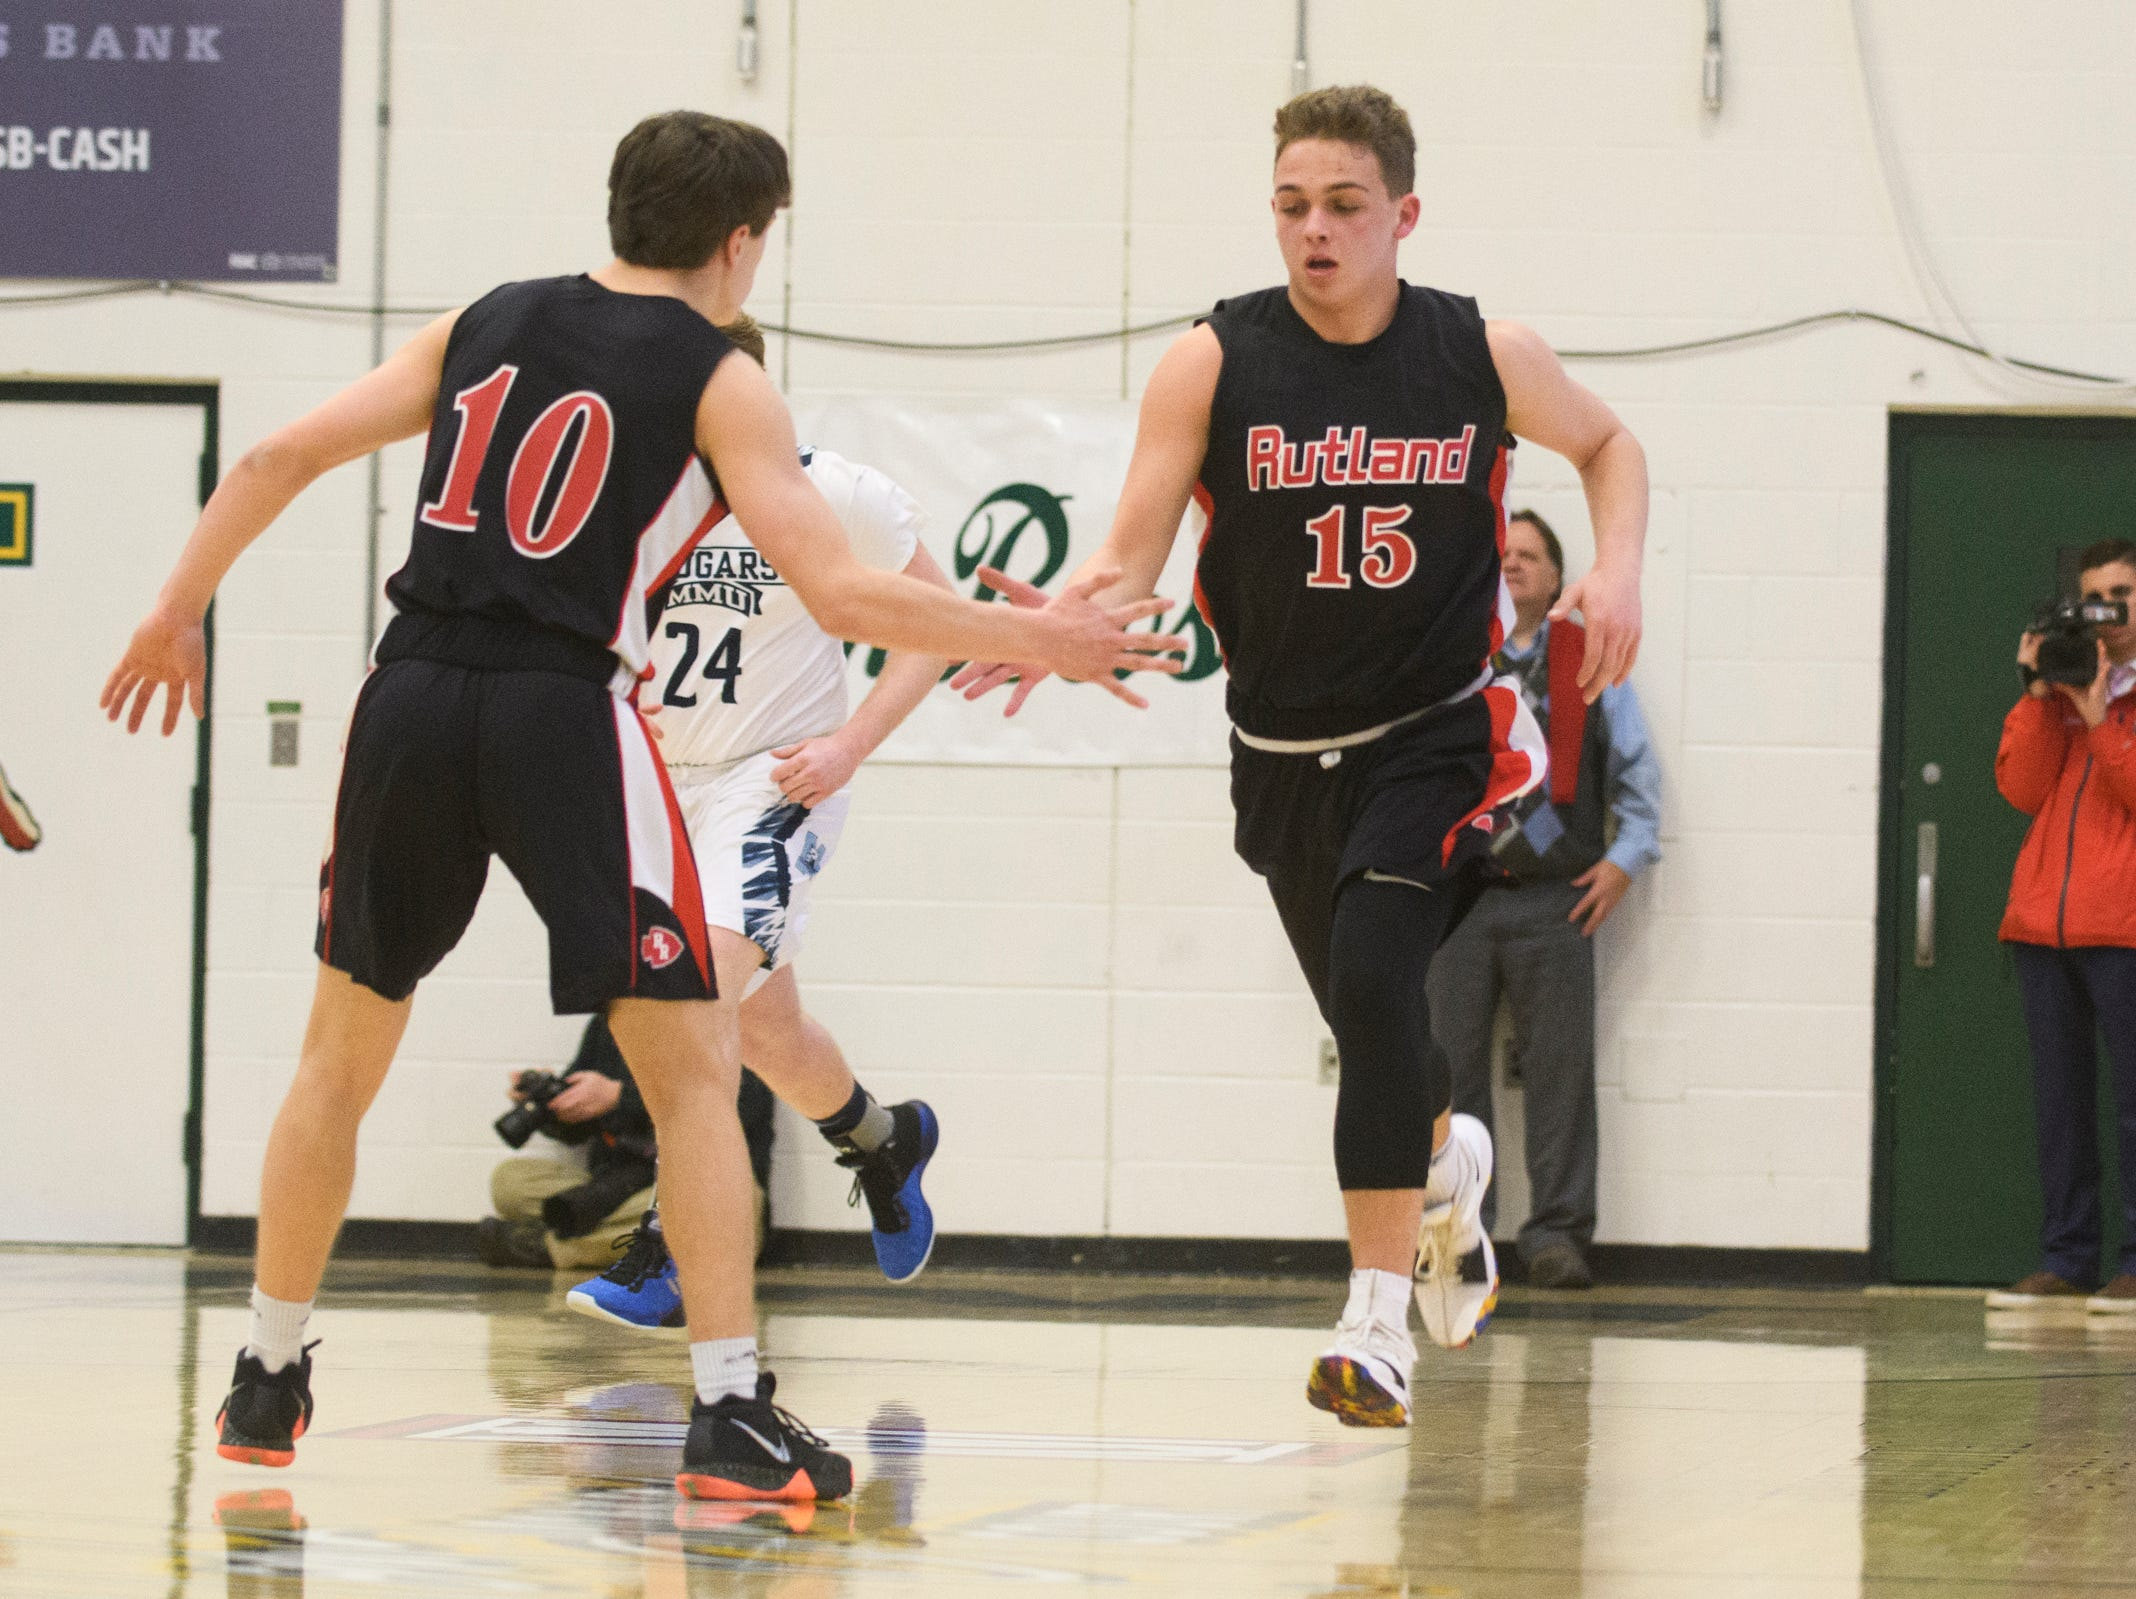 Rutland's Ethan Notte (15) and Evan Pocket (10) celebrates a three pointer during the boys DI semi final basketball game between the Rutland Raiders and the Mount Mansfield Cougars at Patrick Gym on Monday night March 11, 2019 in Burlington, Vermont.